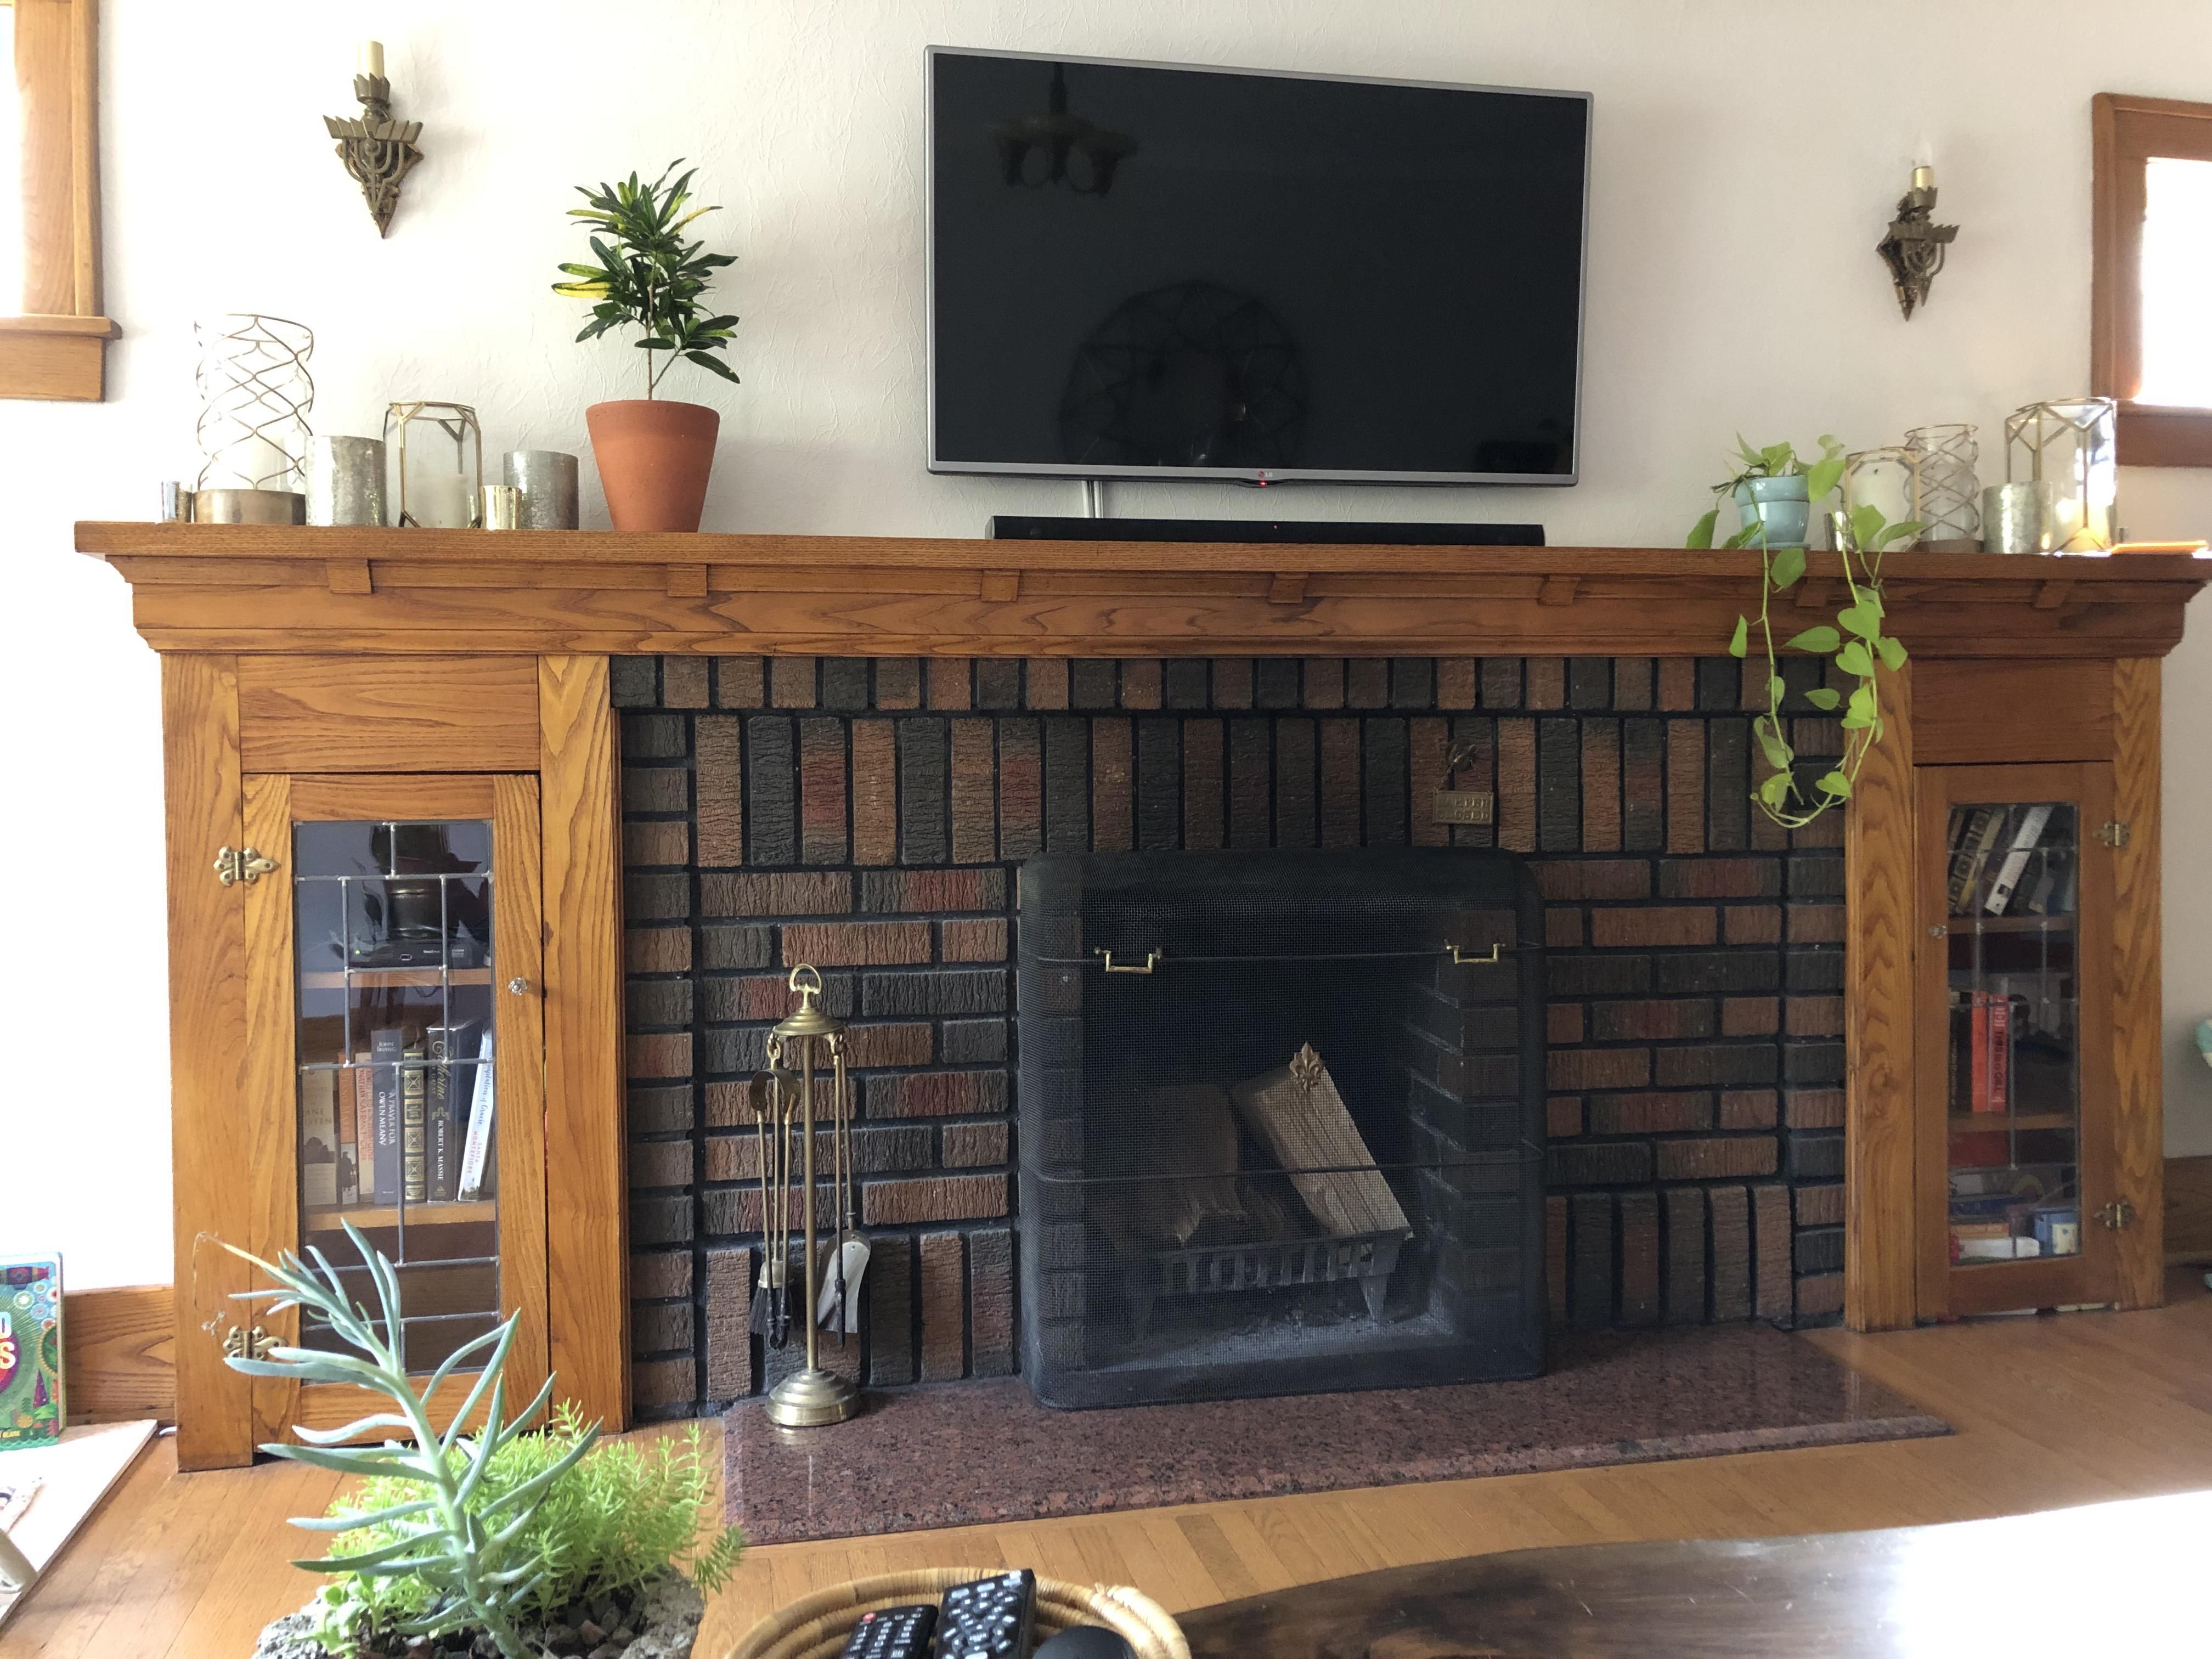 House Smells Like Smoke From Fireplace Fresh Looking for Advice On How to Preserve My Fireplace Size but